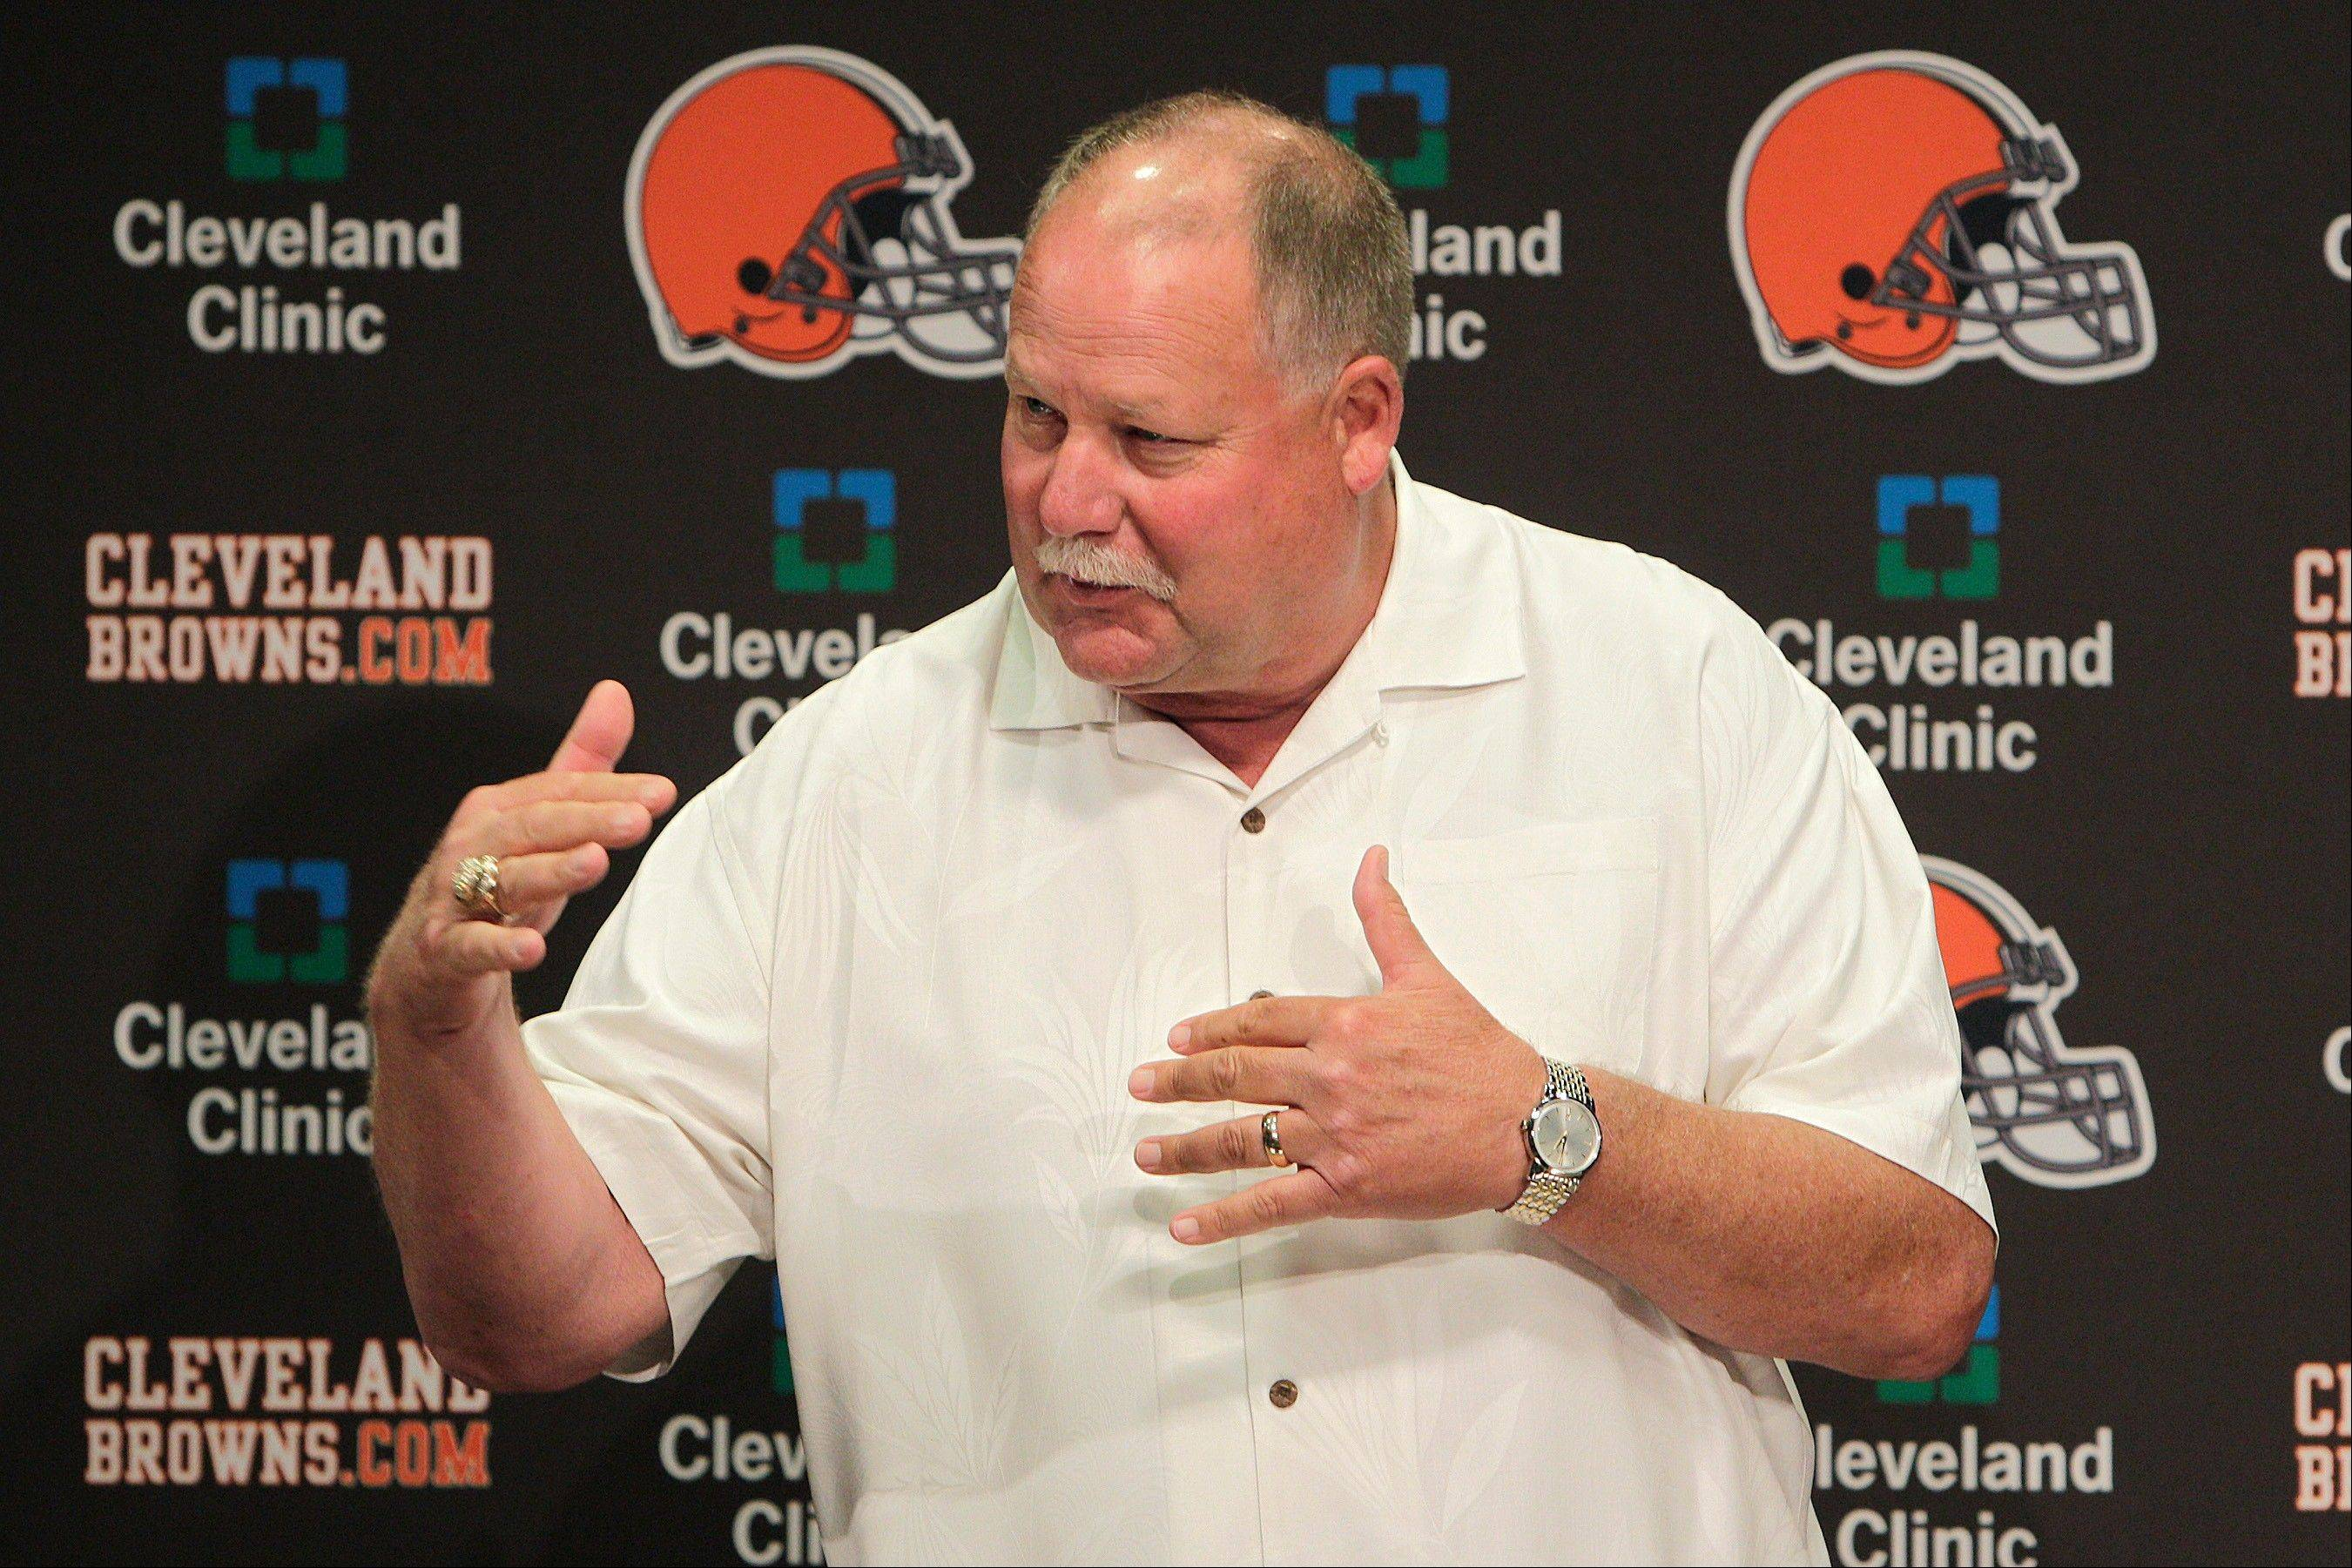 The sale of the Browns to Jimmy Haslam III was unanimously approved by NFL owners Tuesday and Mike Holmgren will be leaving the Browns at the end of the season. A person familiar with the sale told The Associated Press that Joe Banner has been hired as CEO of the Browns to replace Holmgren. The person spoke on condition of anonymity because Banner�s hiring and Holmgren�s departure have not been announced.